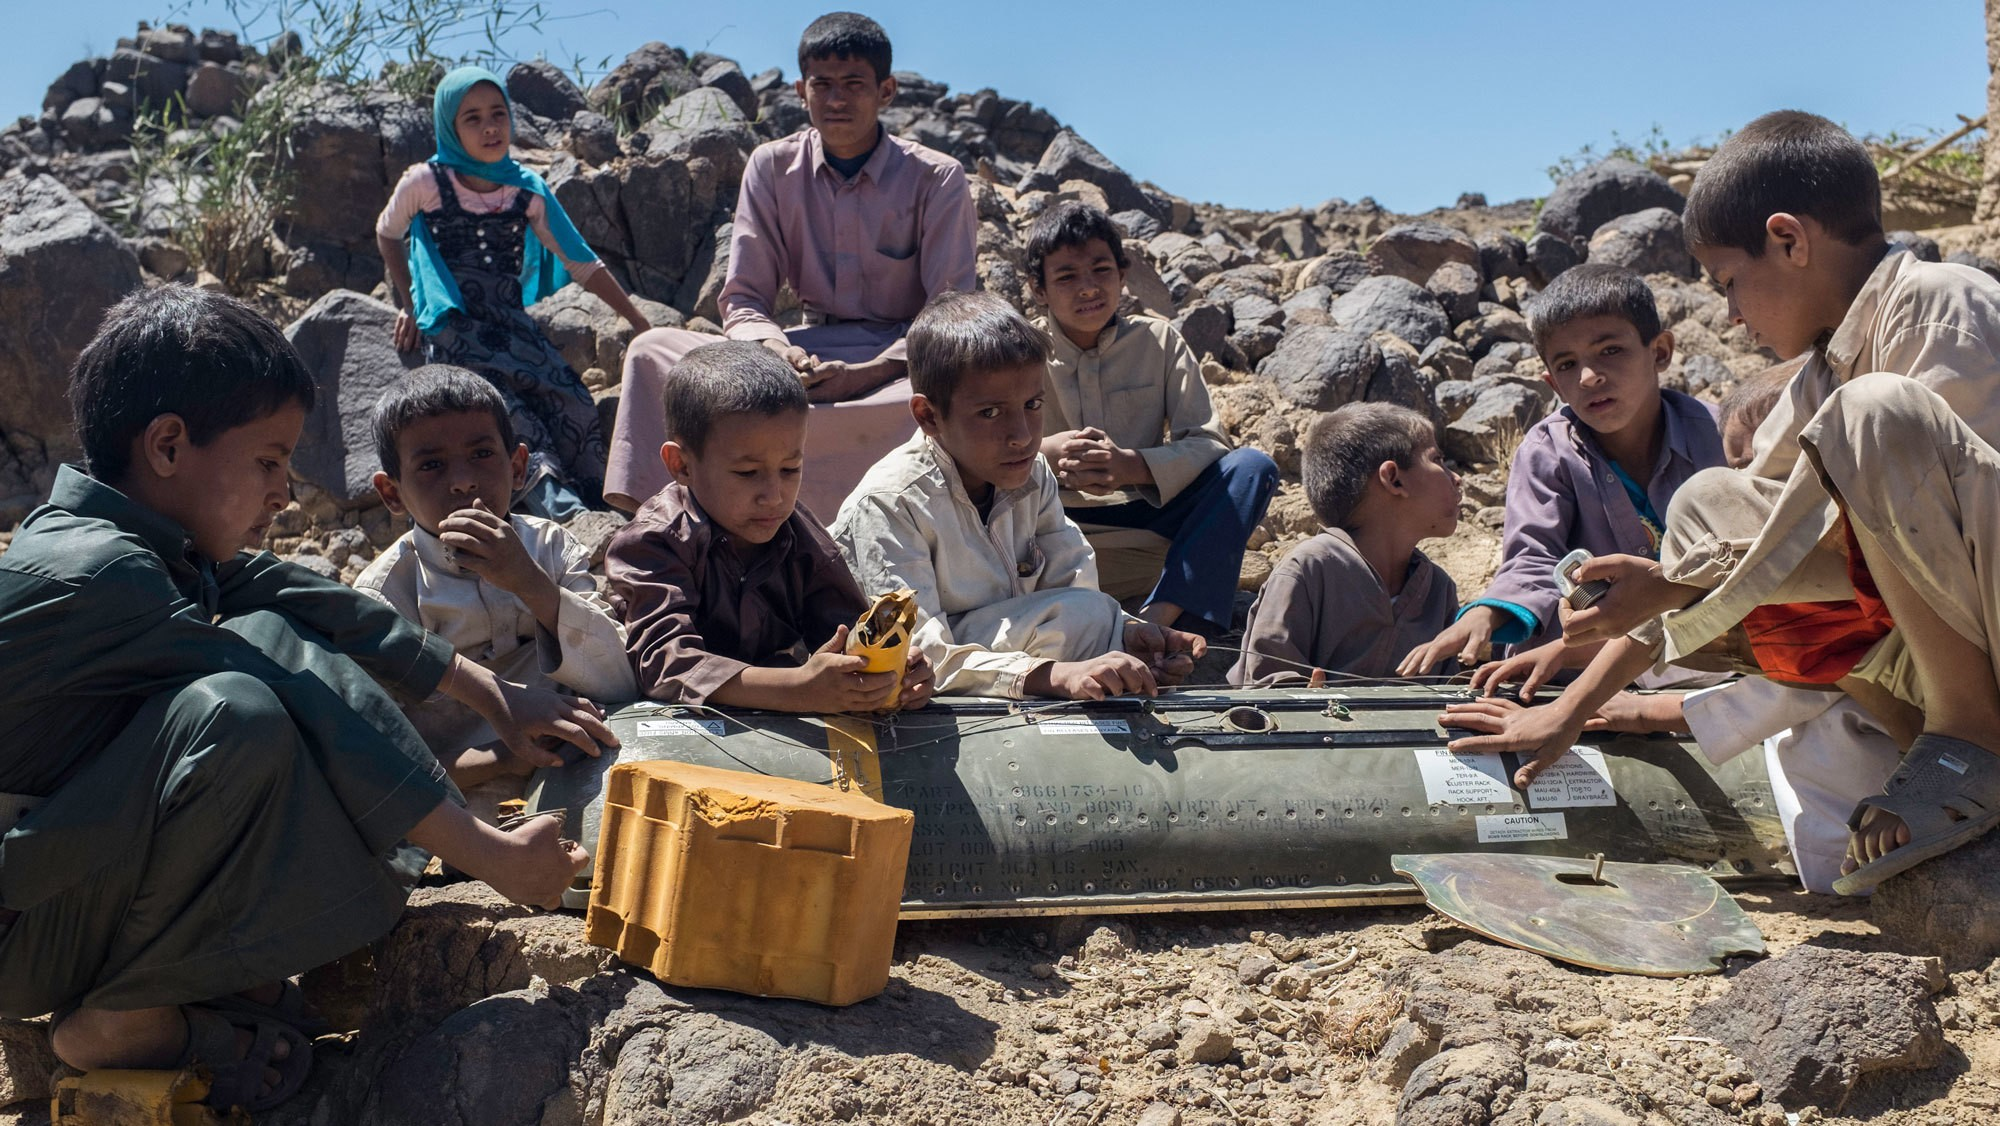 Dead Civilians, Uneasy Alliances, and the Fog of Yemen's War